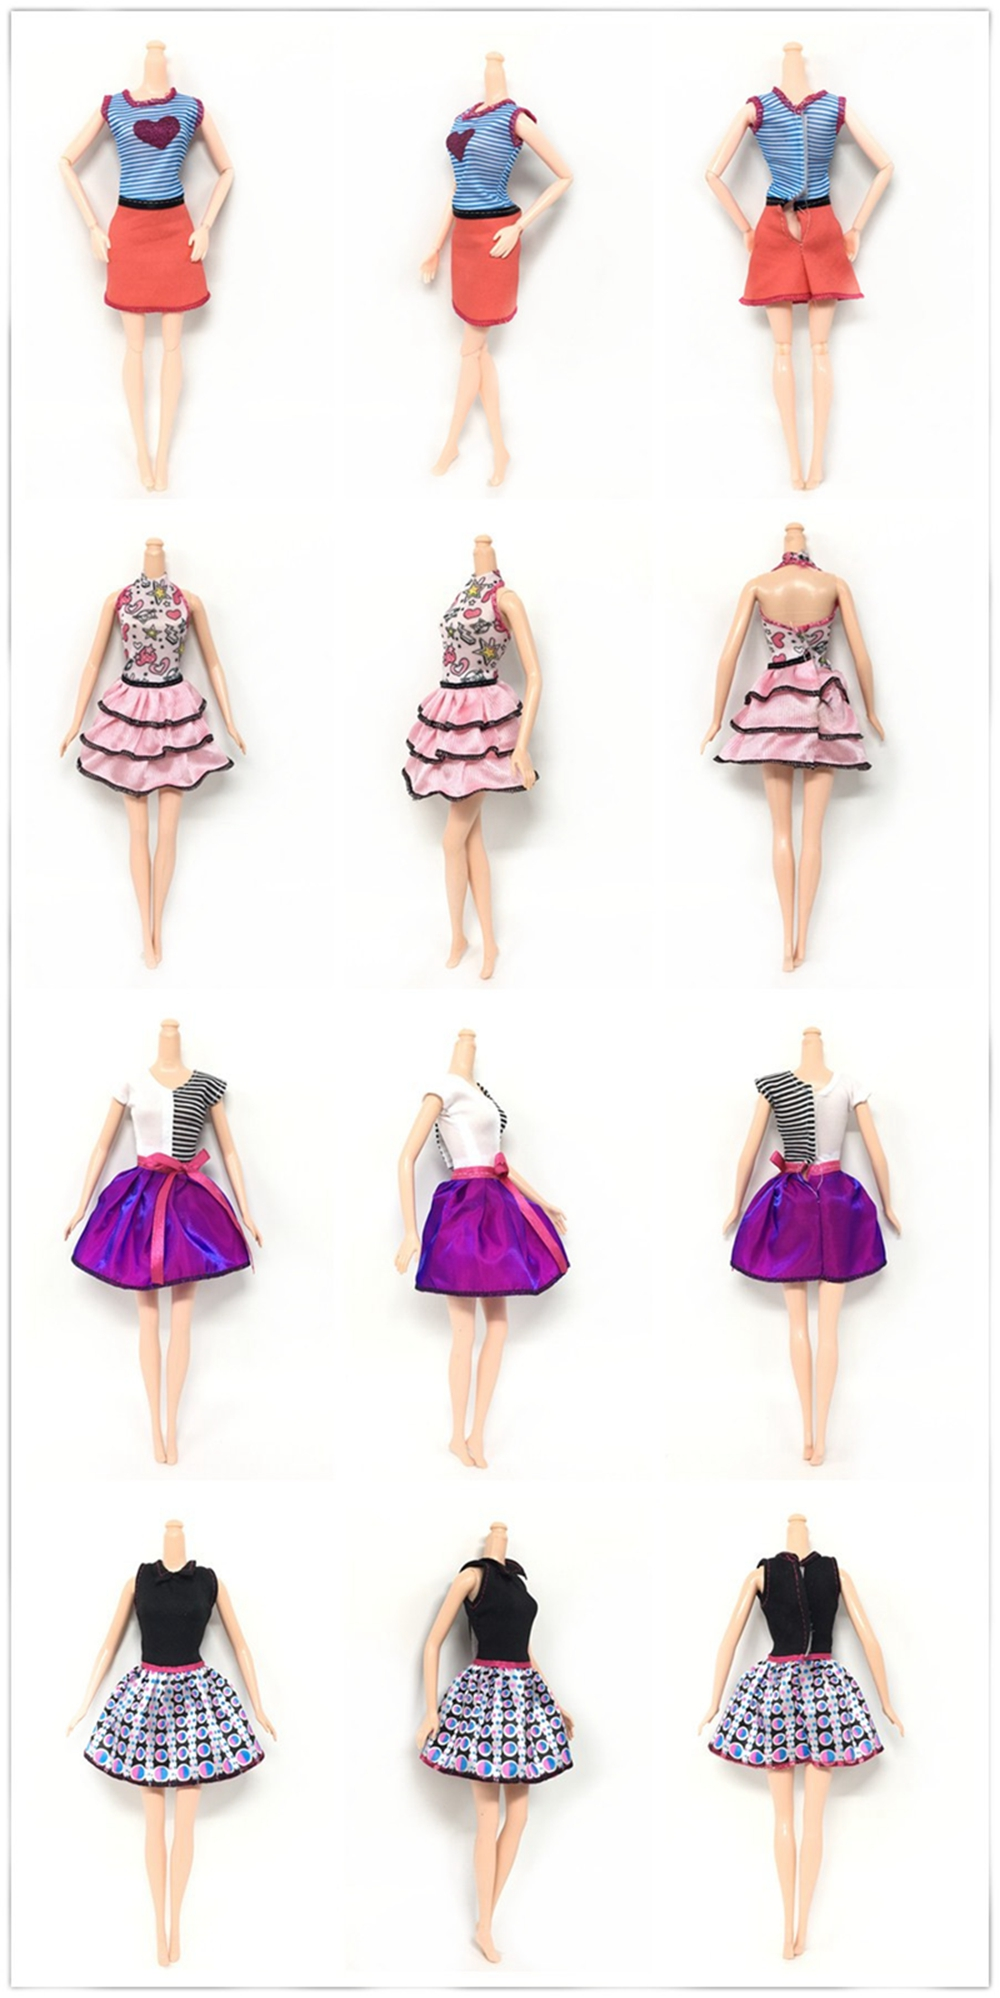 Handmade New Baby Doll Clothes Fashion Princess Girl Doll Dress Evening Party Ball Gown Dress for 29cm 11inch Barbies Doll Suits (23)